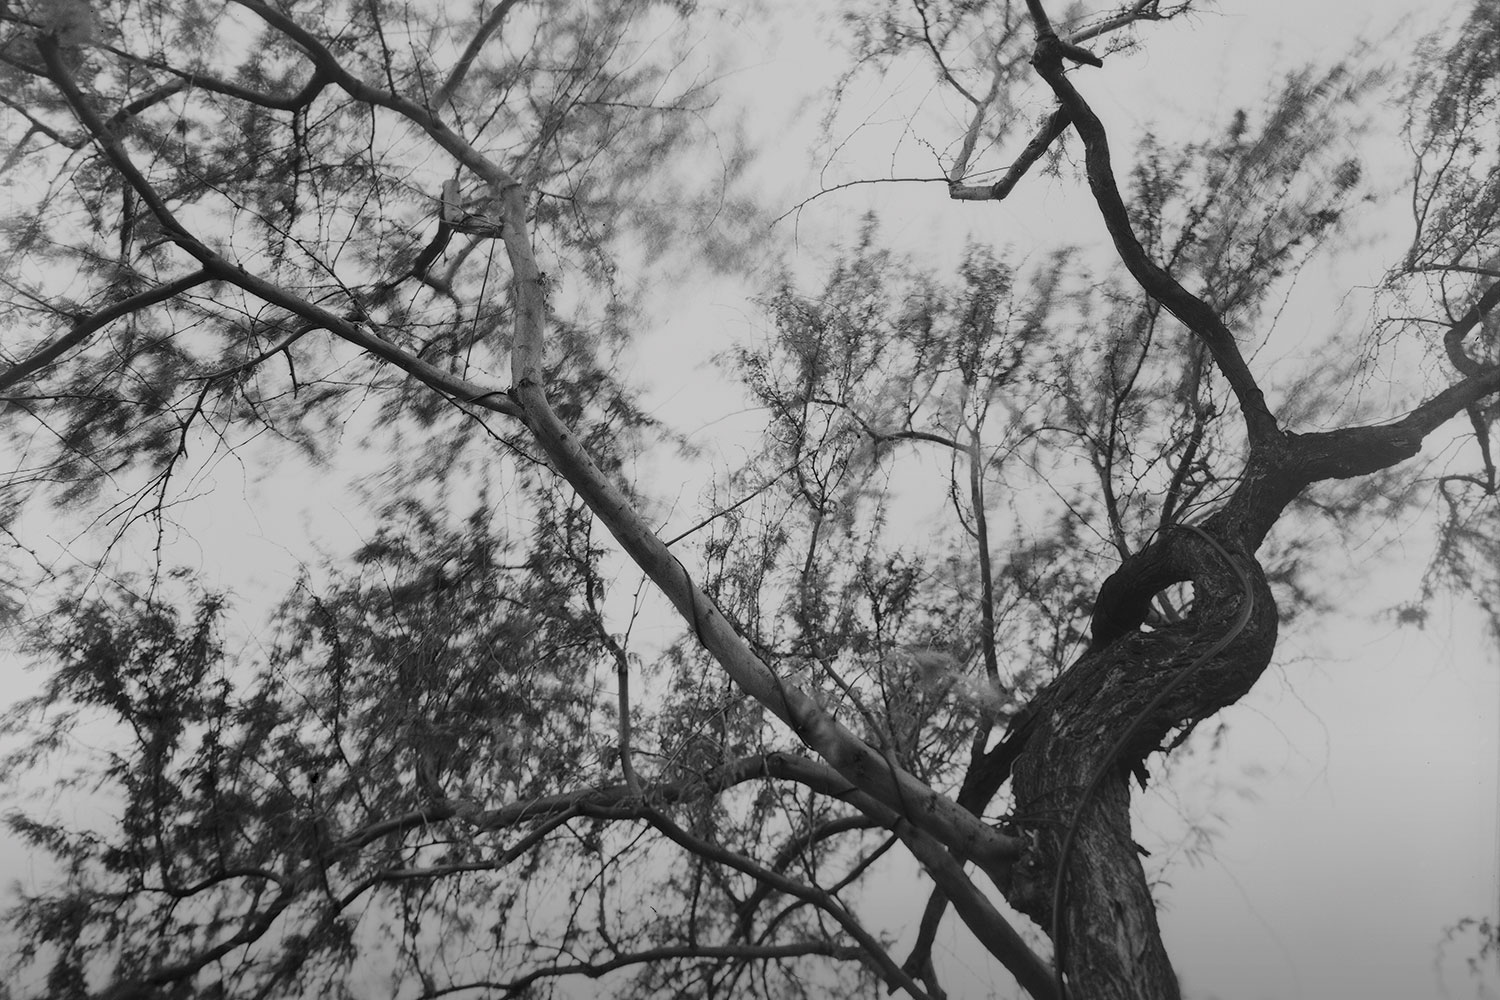 Black and white photo of kiawe tree branches